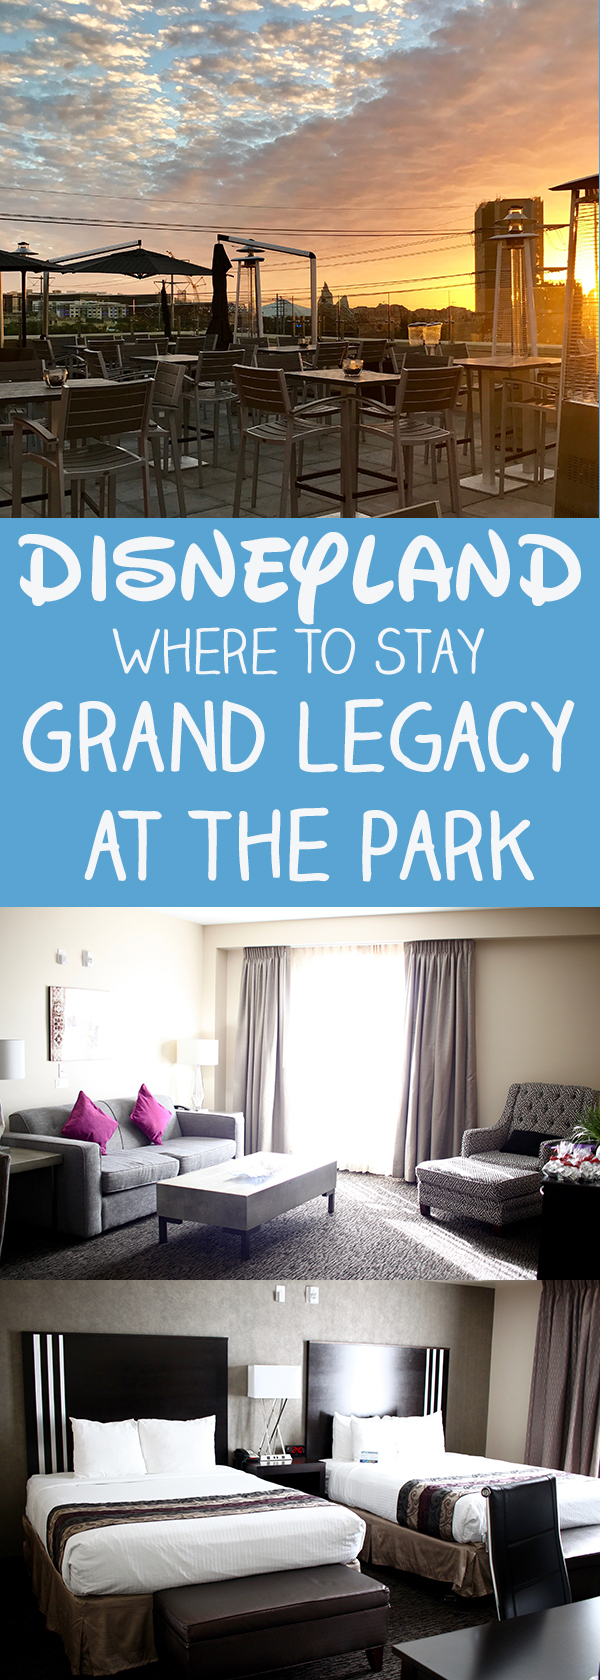 Where to Stay at Disneyland - Grand Legacy at the Park